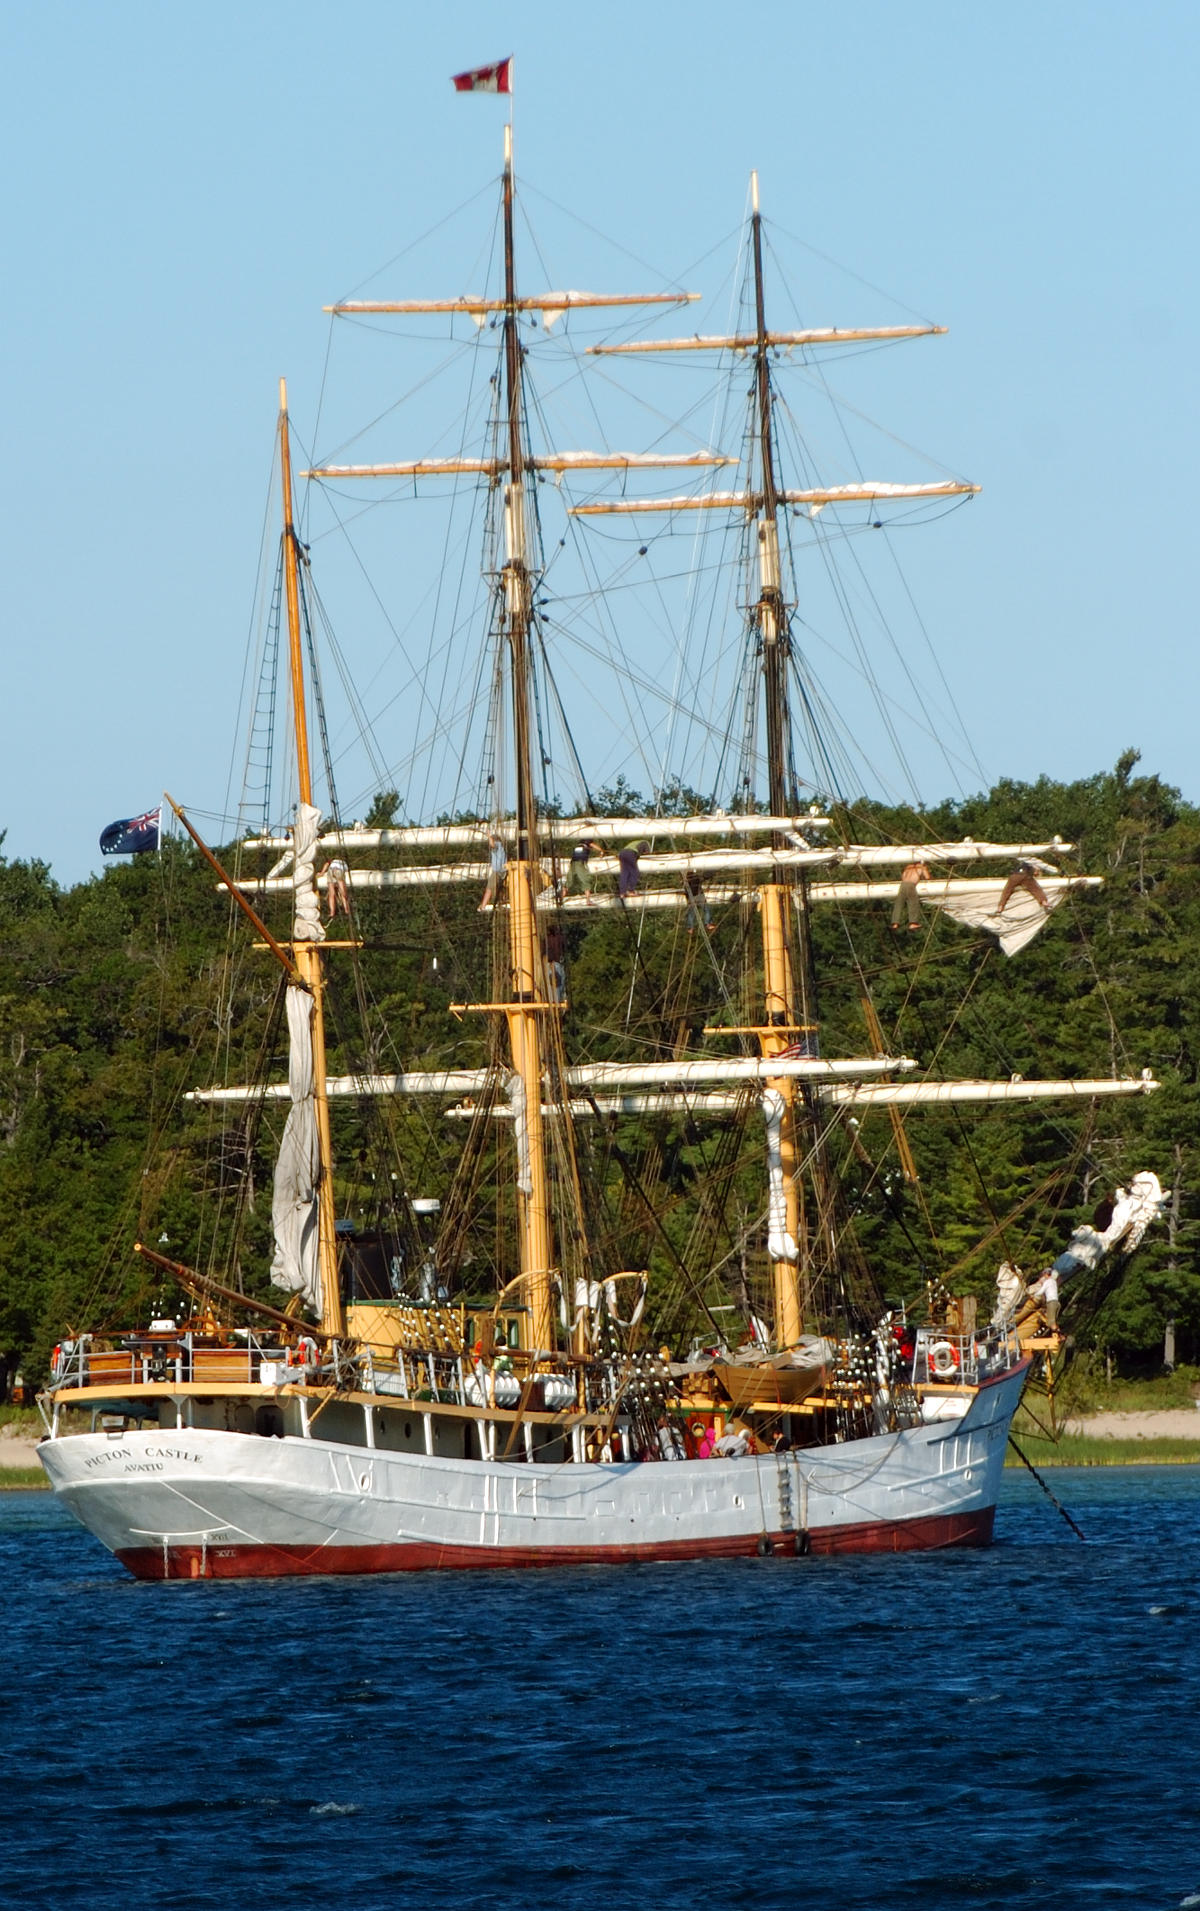 Beacon-Barque-Picton-Castle-7